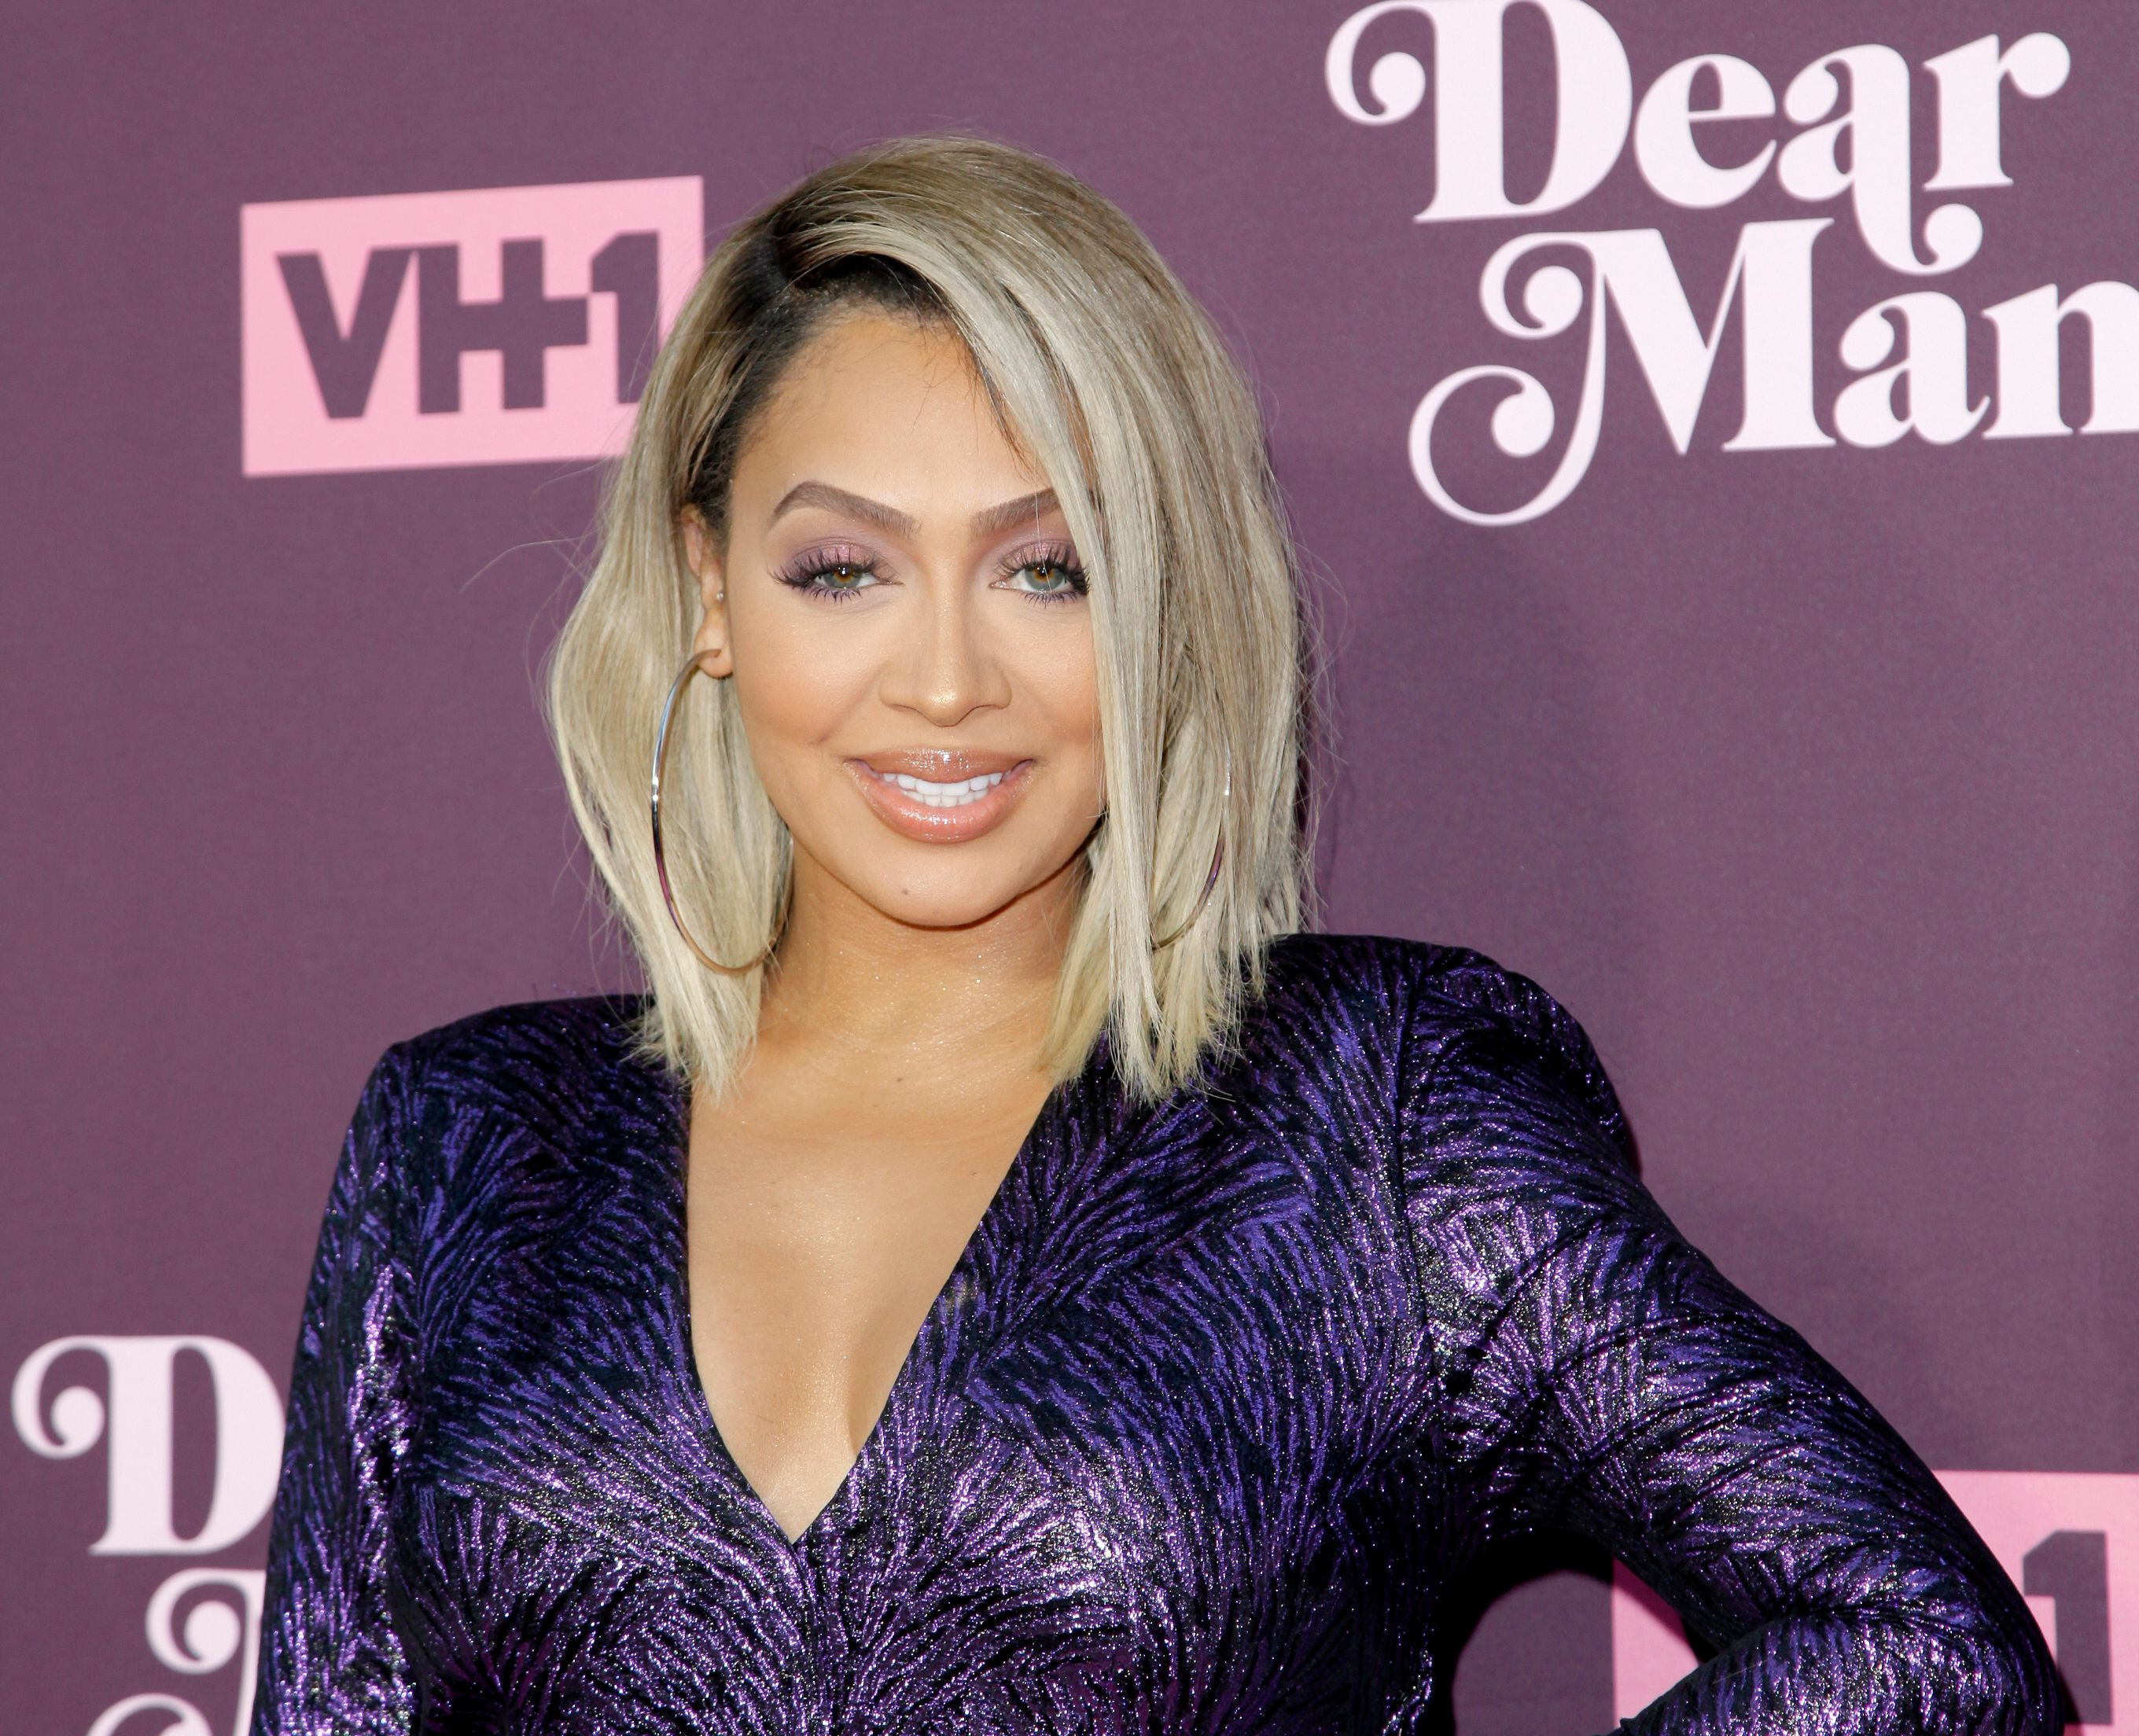 La La Anthony at VH1's 3rd annual 'Dear Mama: A Love Letter To Moms' screening at The Theatre at Ace Hotel on May 3, 2018 | Photo: Getty Images